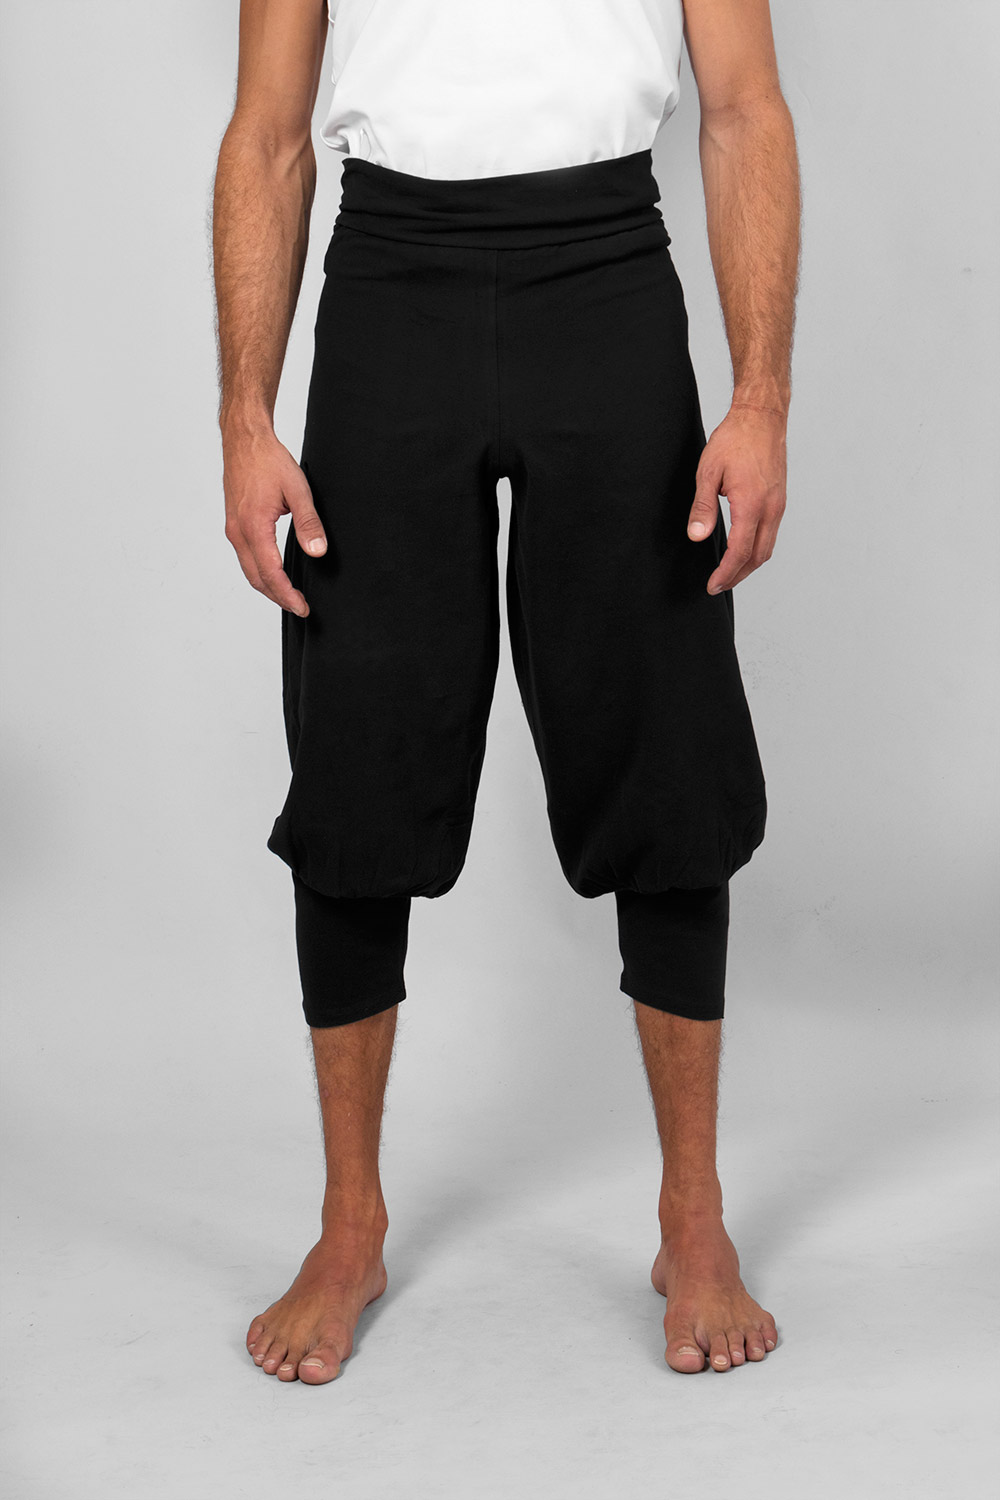 yoga short sadhak breath of fire